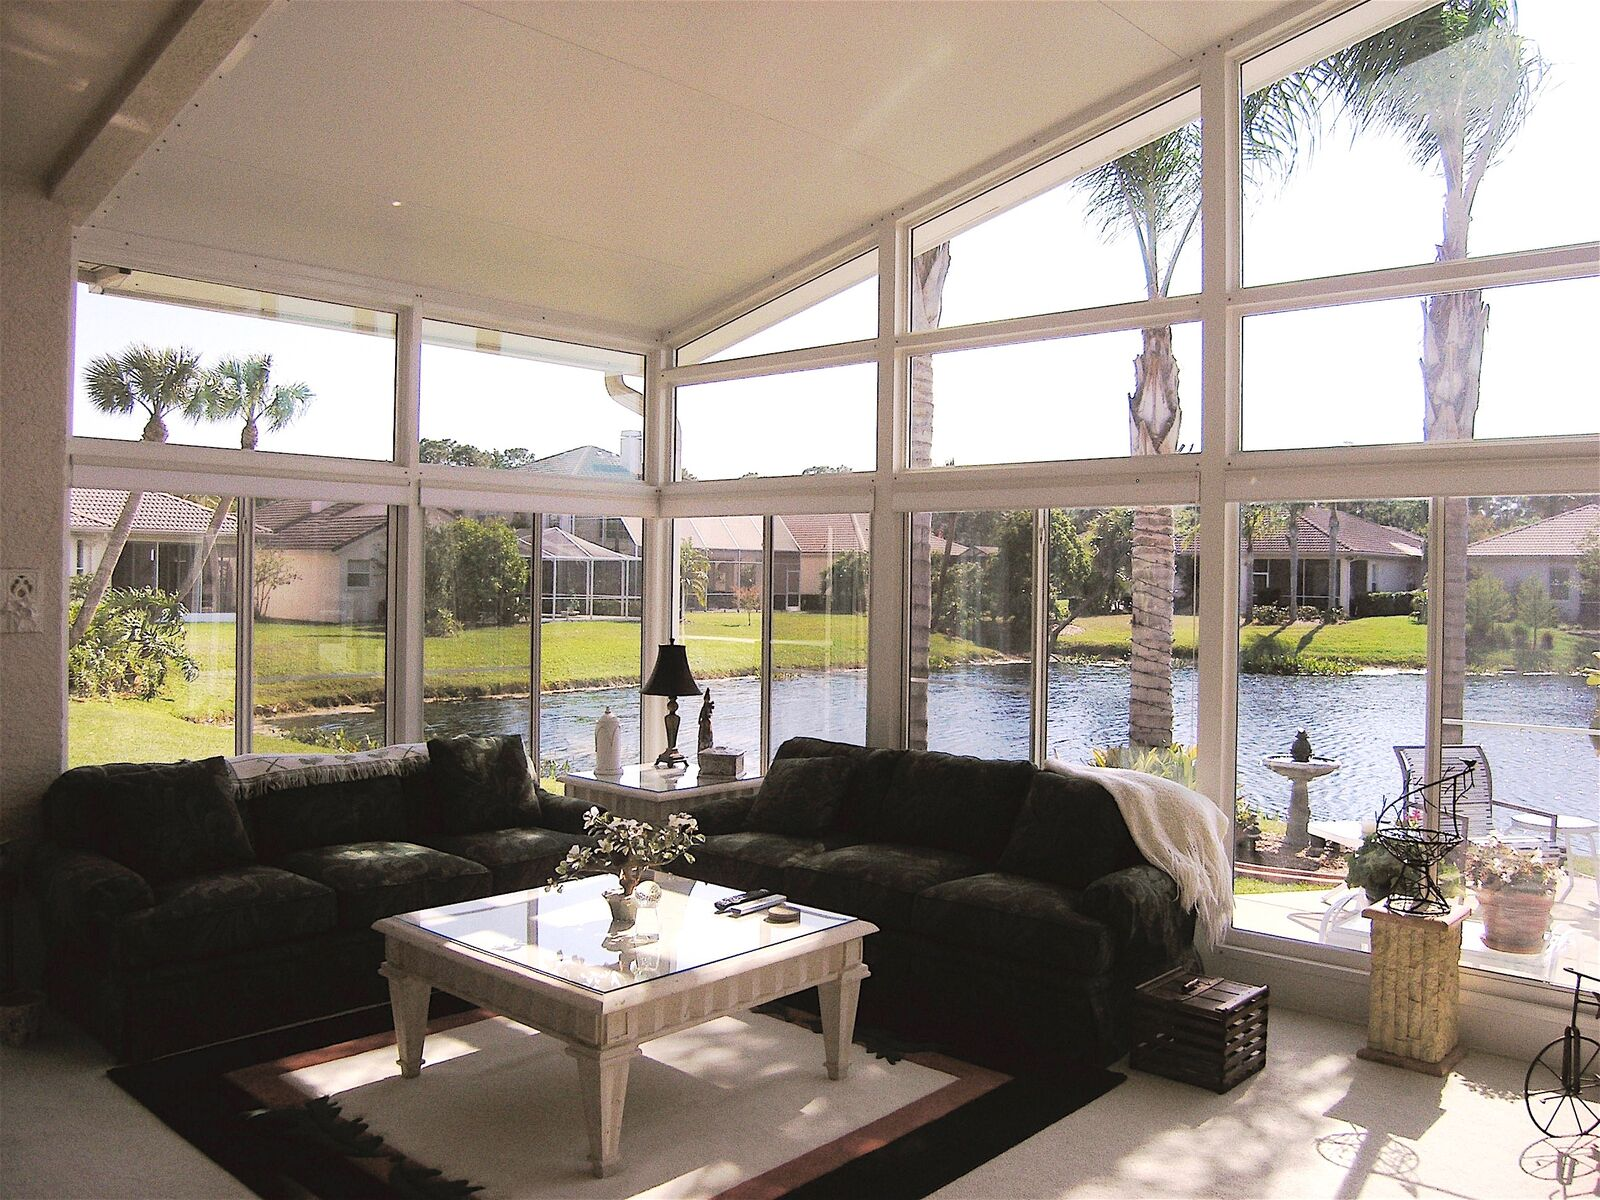 Renaissance Sunrooms Clearwater FL